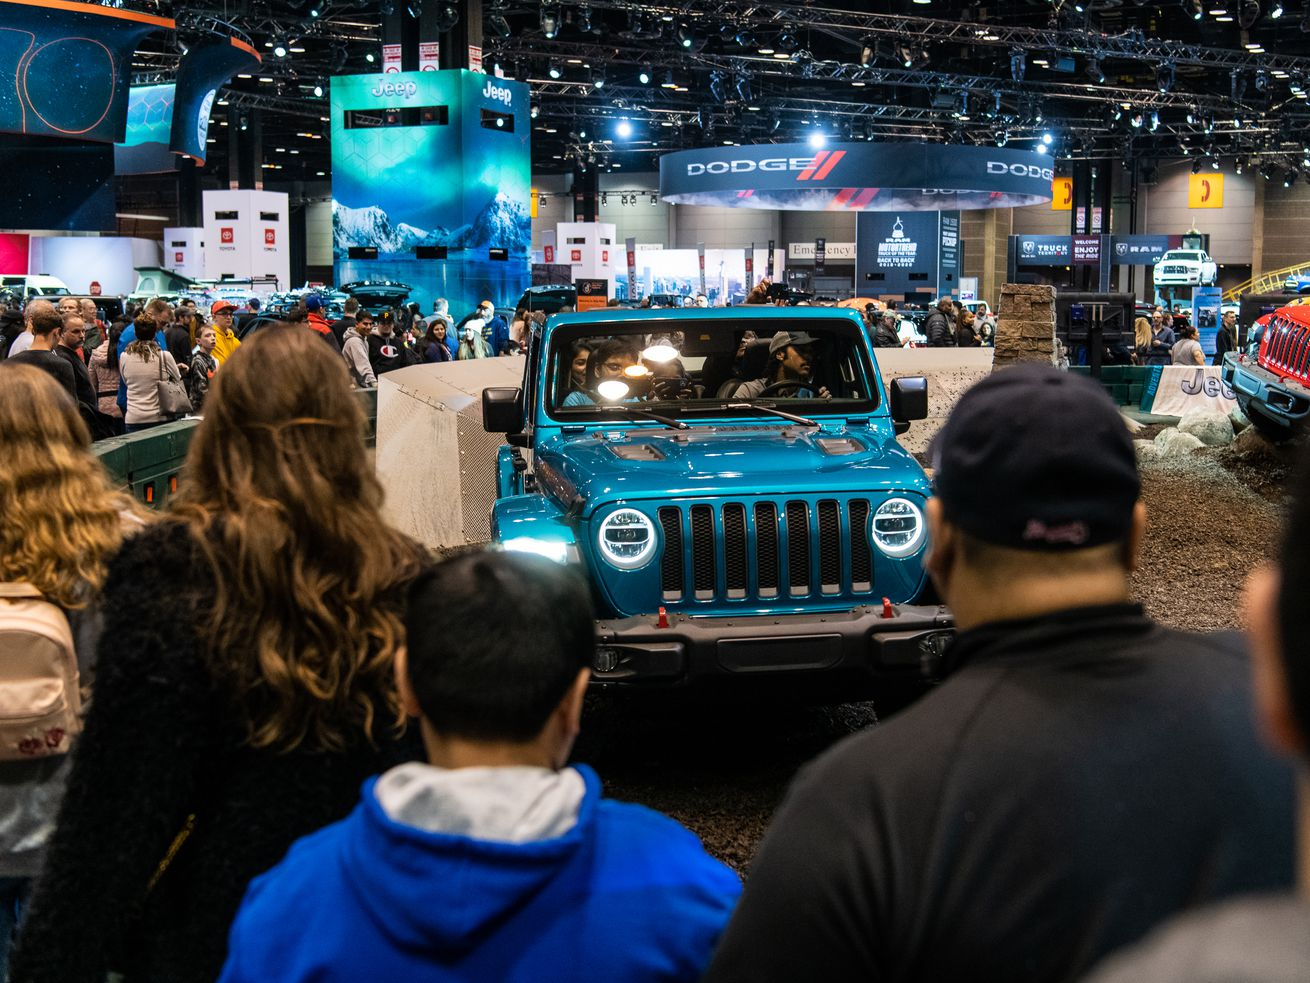 A crowd waits in line to test drive Jeep vehicles at the Jeep test driving course Saturday at the 2020 Chicago Auto Show at McCormick Place.